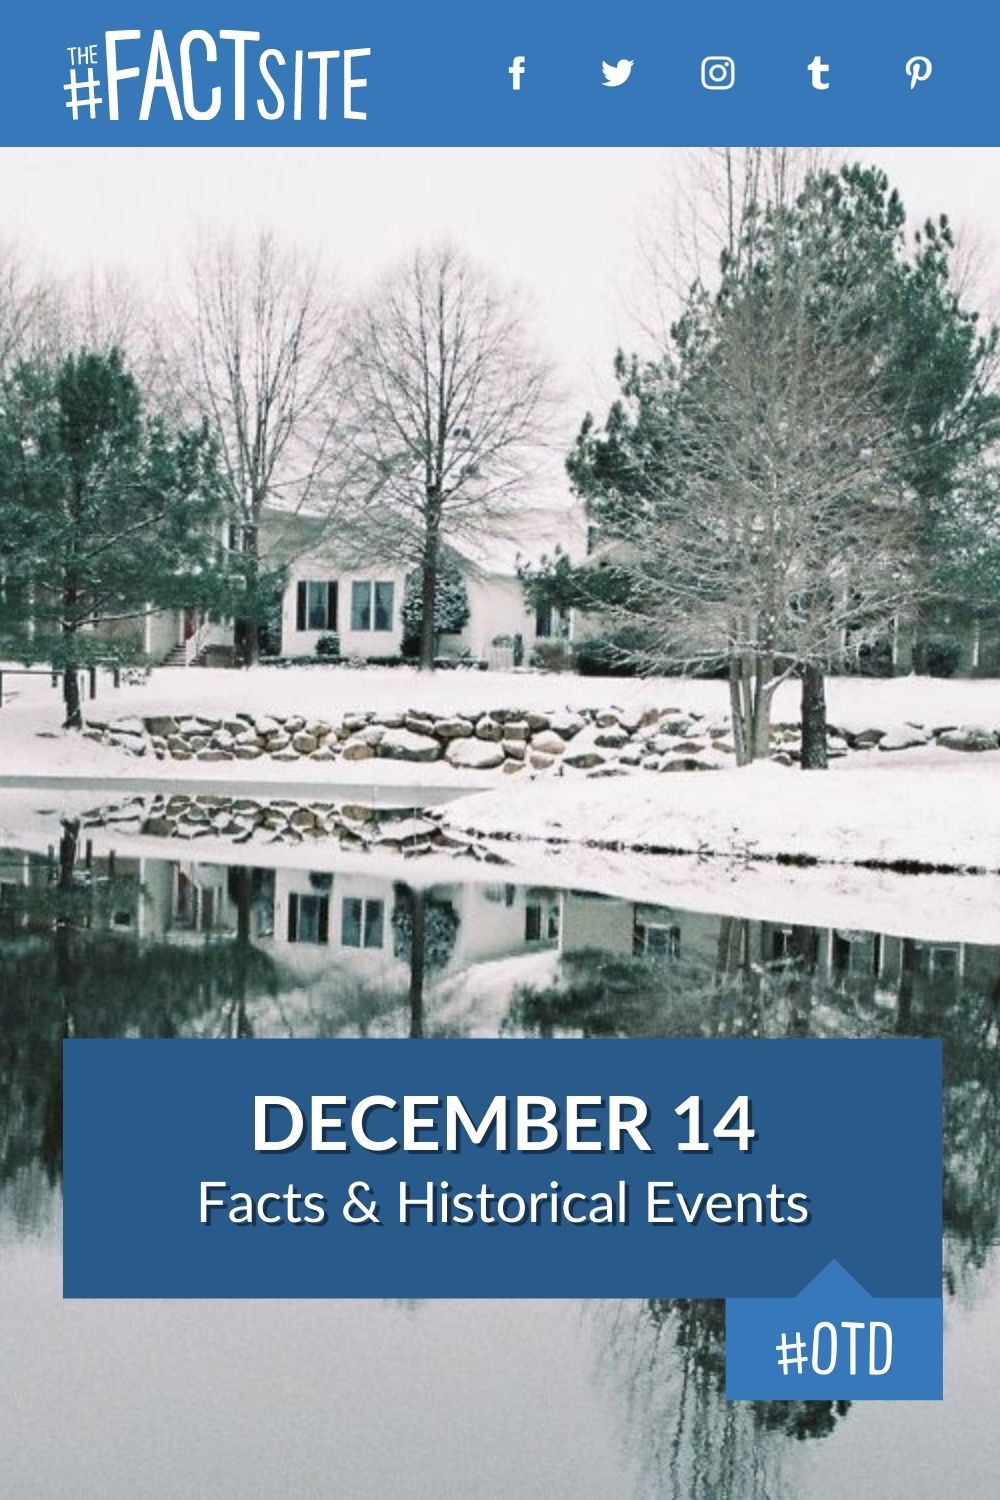 Facts & Historic Events That Happened on December 14